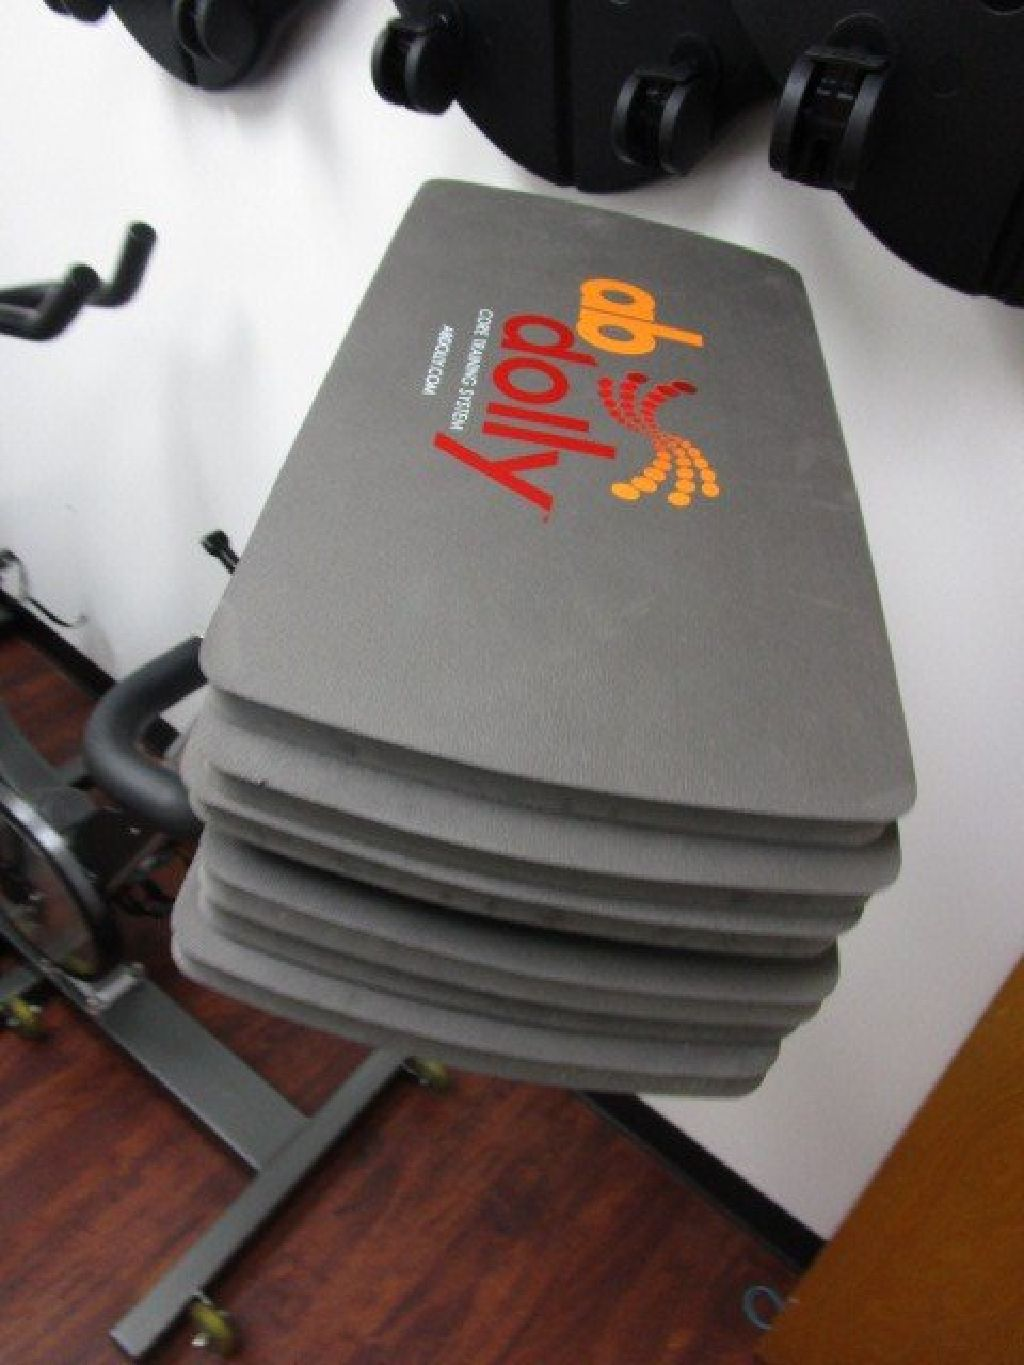 Fitness Equipment & Gear Ab Dolly Reasonable Price Fitness, Running & Yoga